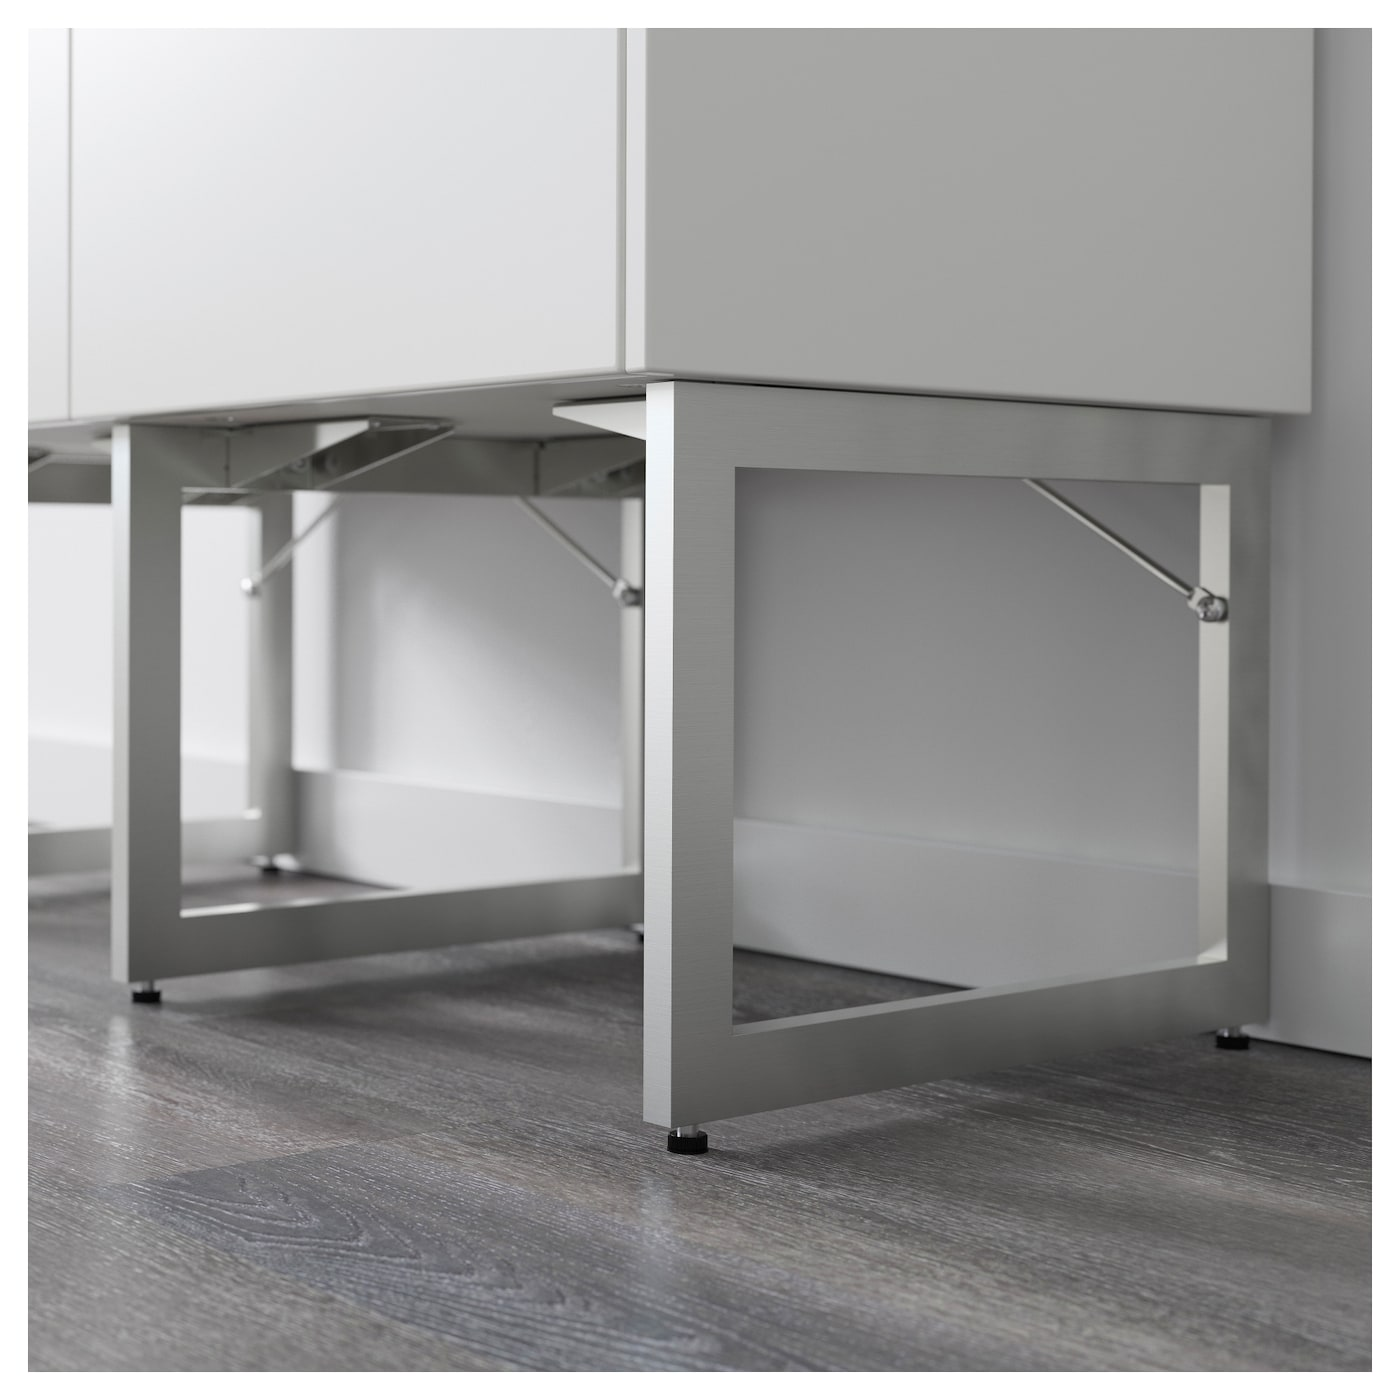 IKEA LIMHAMN leg Stands steady on uneven floors because they are adjustable between 28-29 cm.